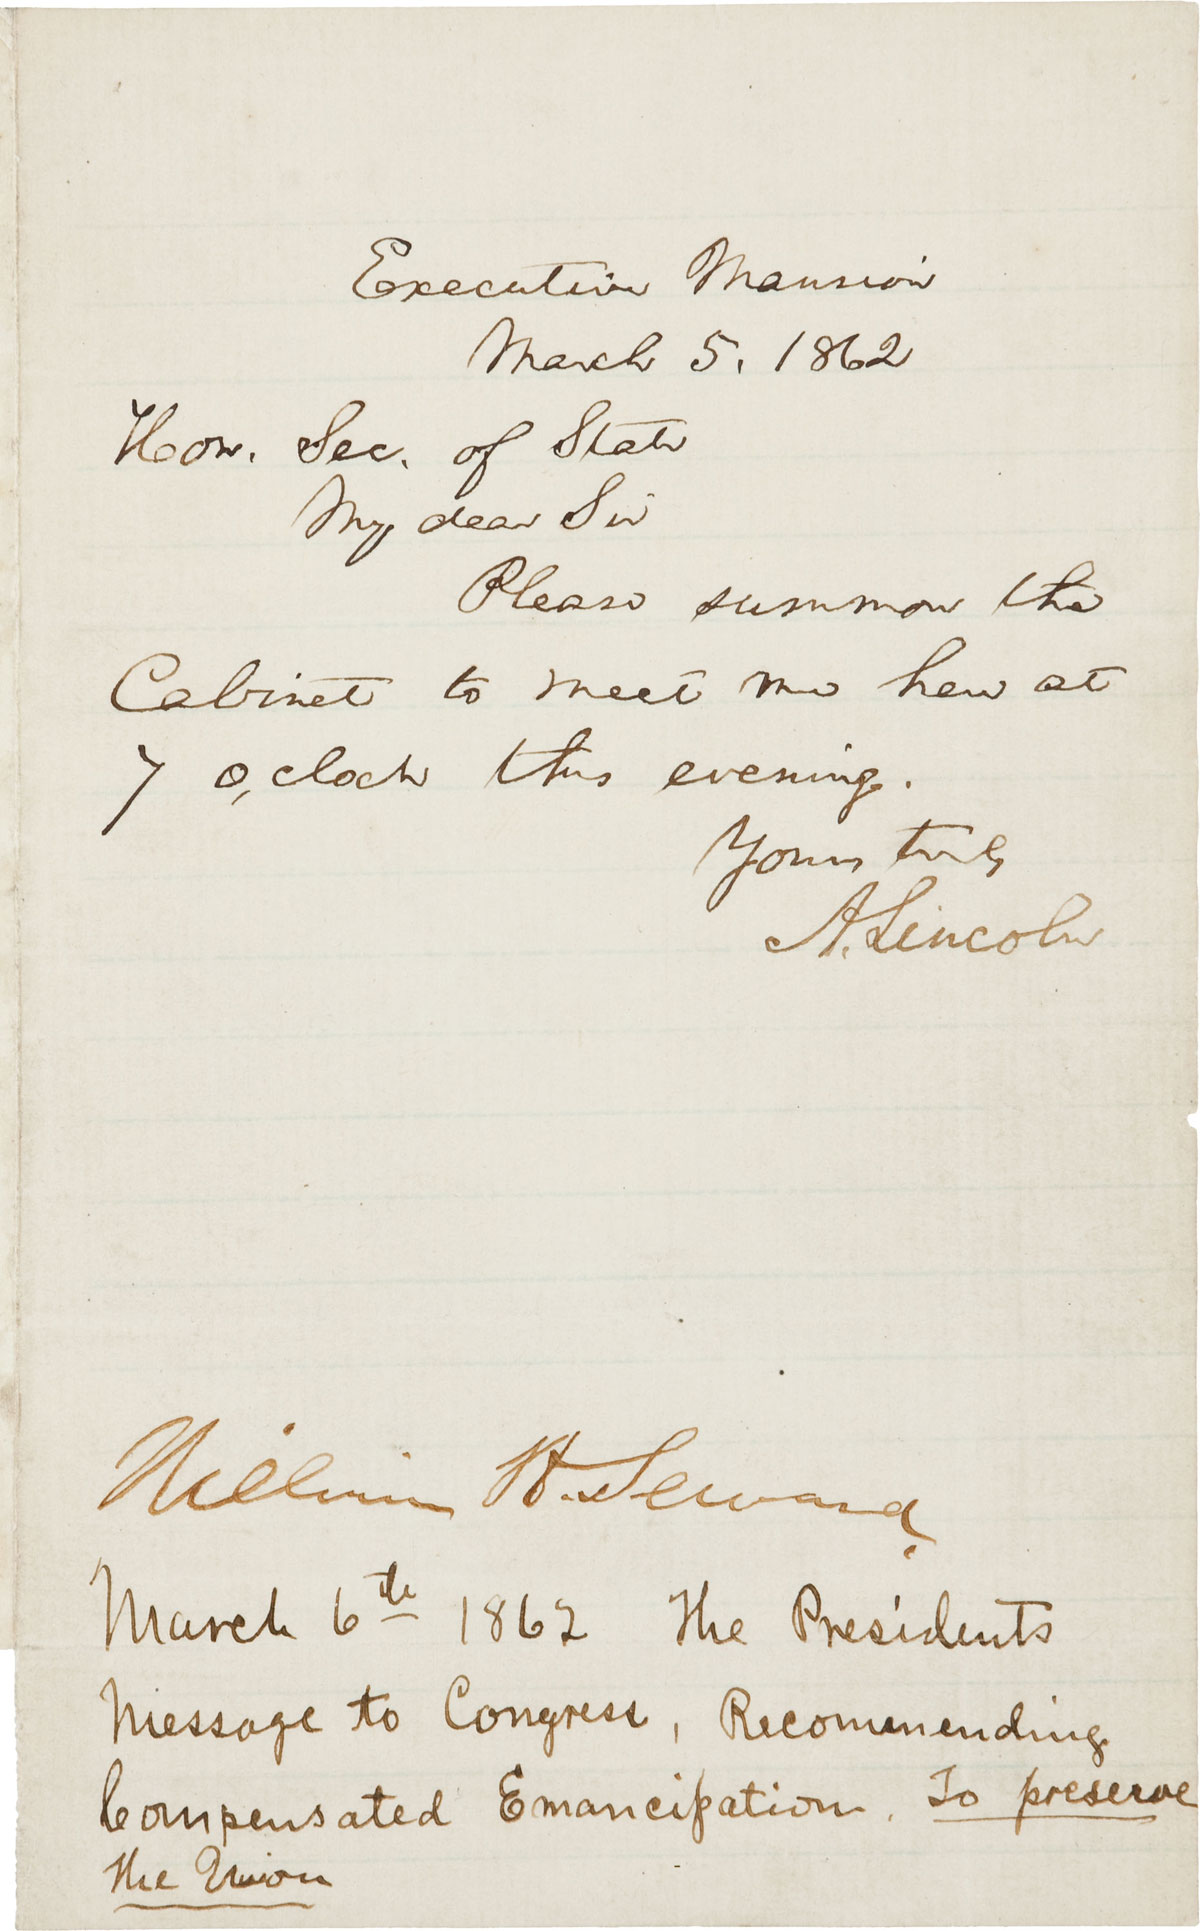 Abraham Lincoln's Emancipation Letter Expected to Fetch $150,000 at Heritage's Auction